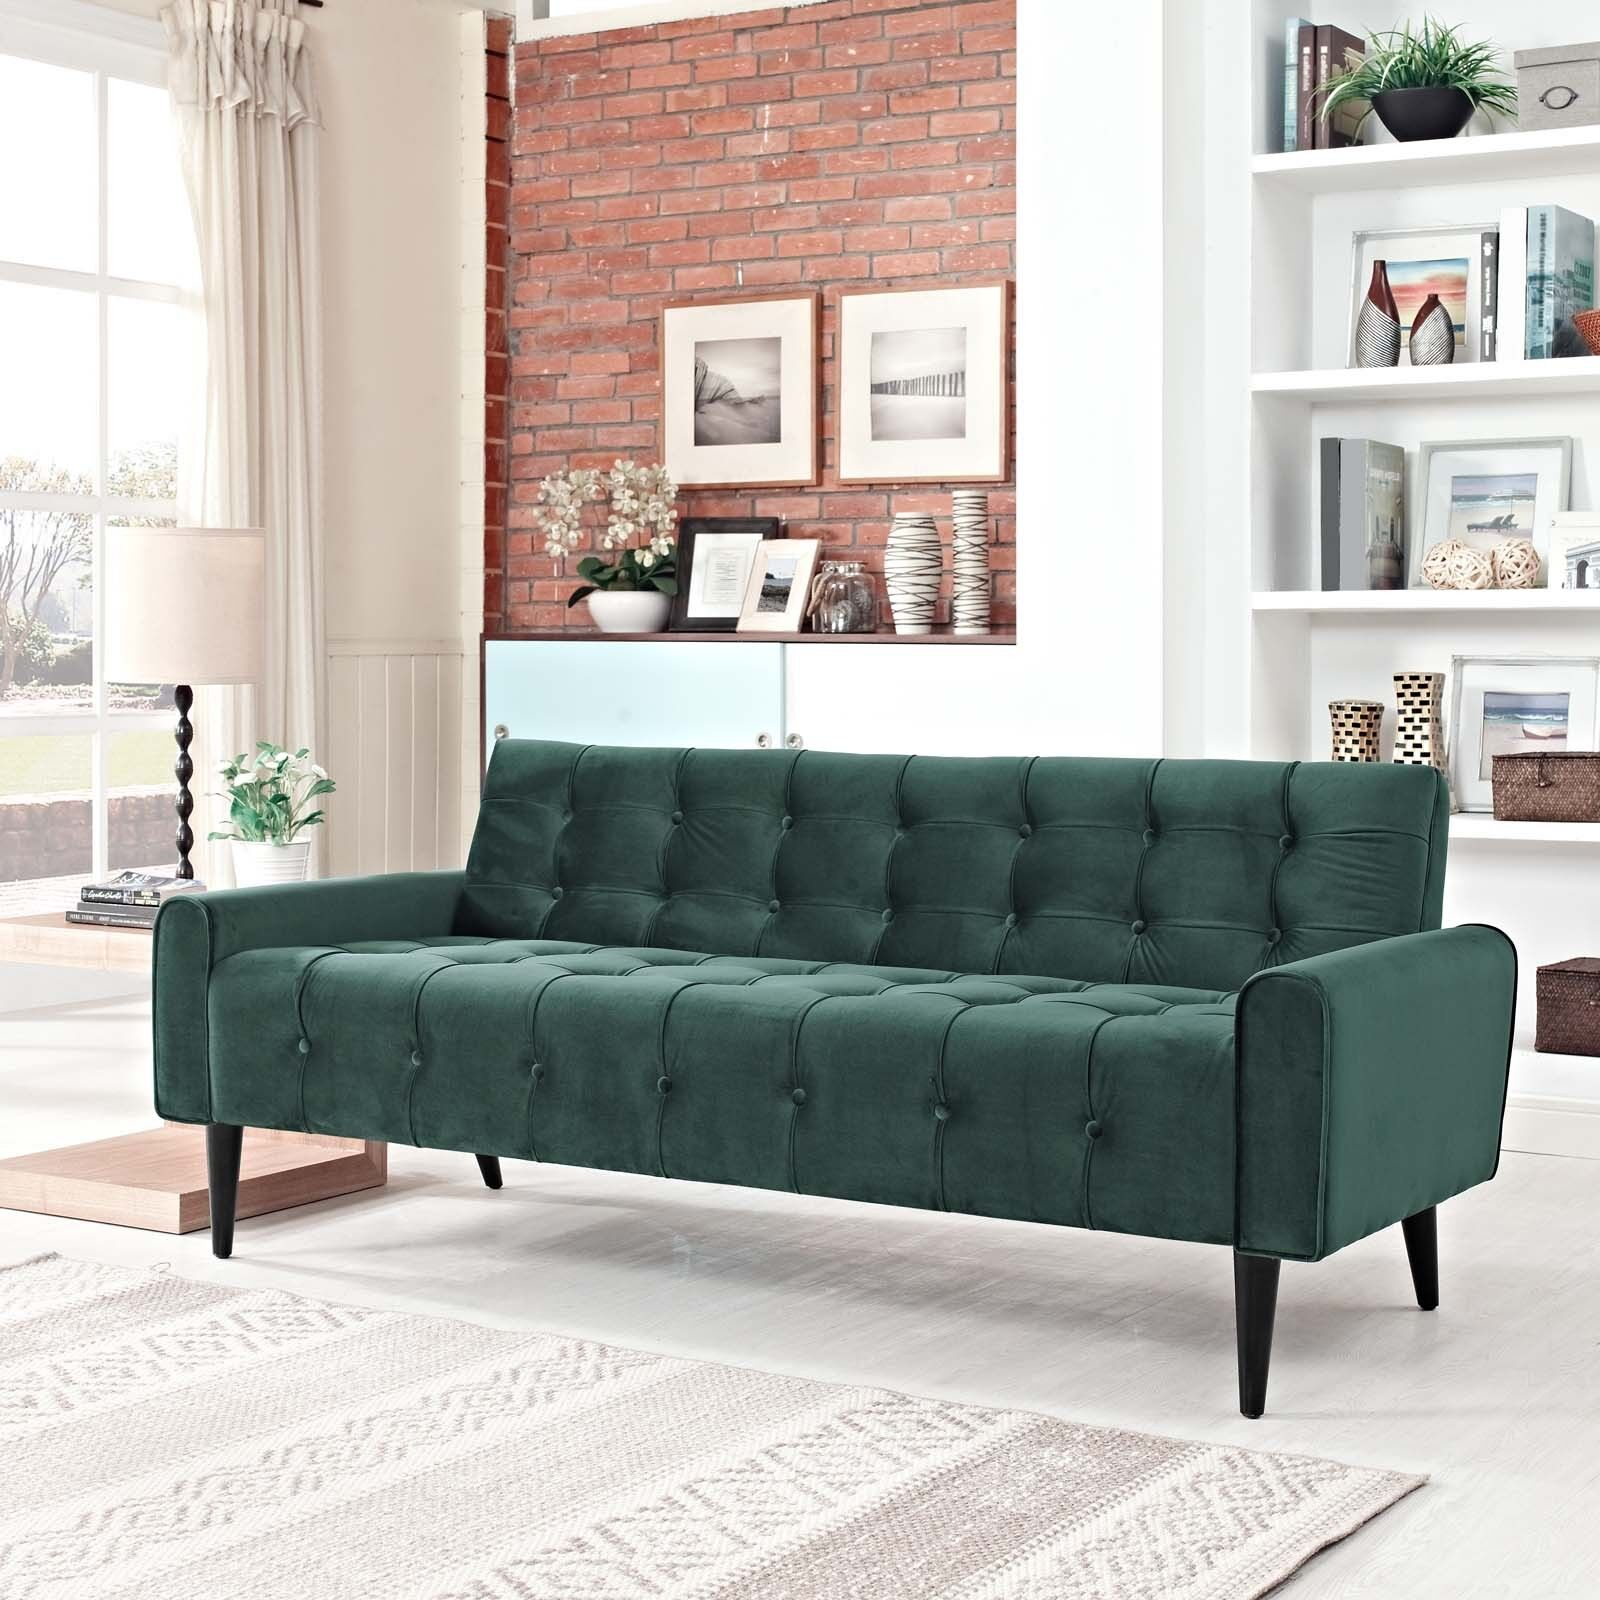 Modern Button Tufted Upholstered Velvet Living Room Sofa In Emerald Green Ebay